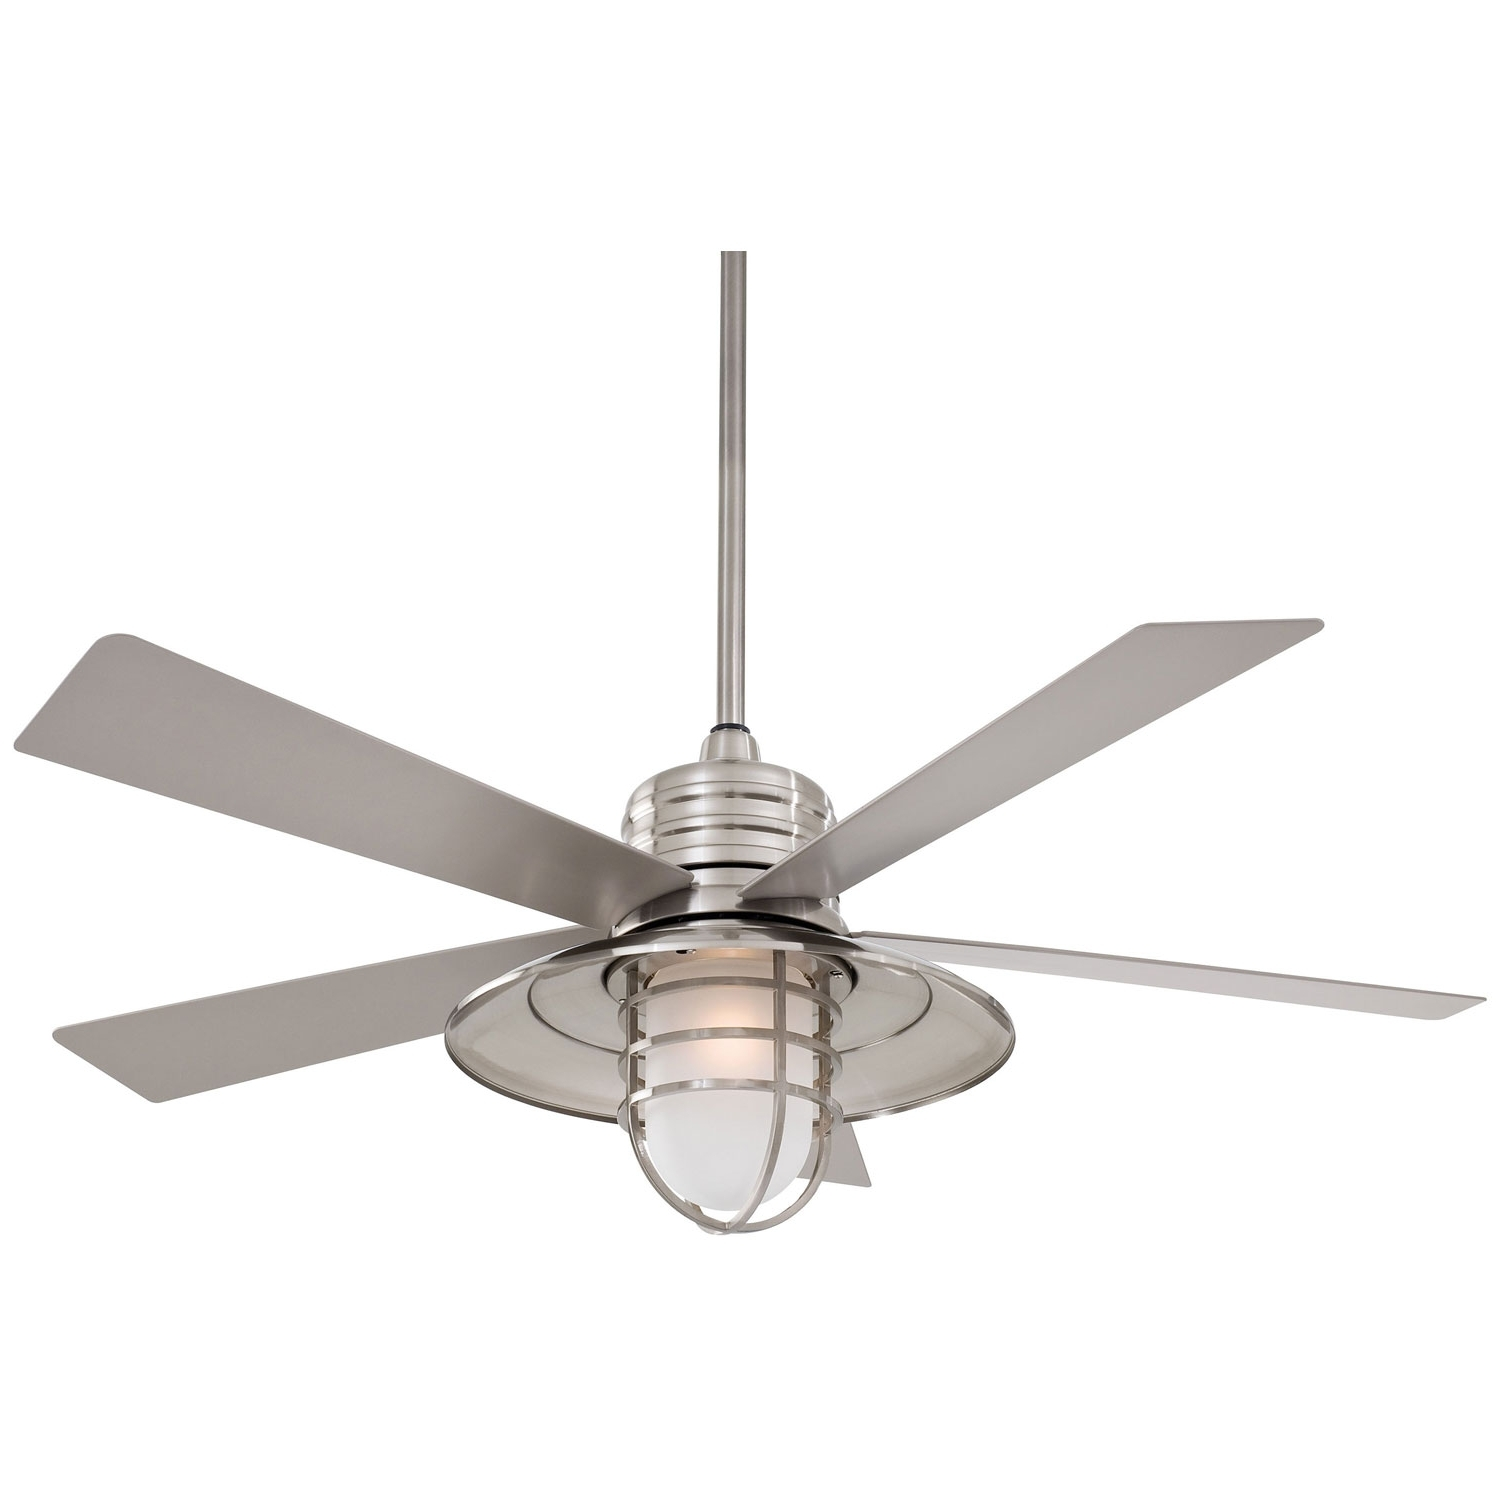 Minka Aire Rainman Brushed Nickel 54 Inch Blade Indoor/outdoor Within Current Brushed Nickel Outdoor Ceiling Fans (View 10 of 20)